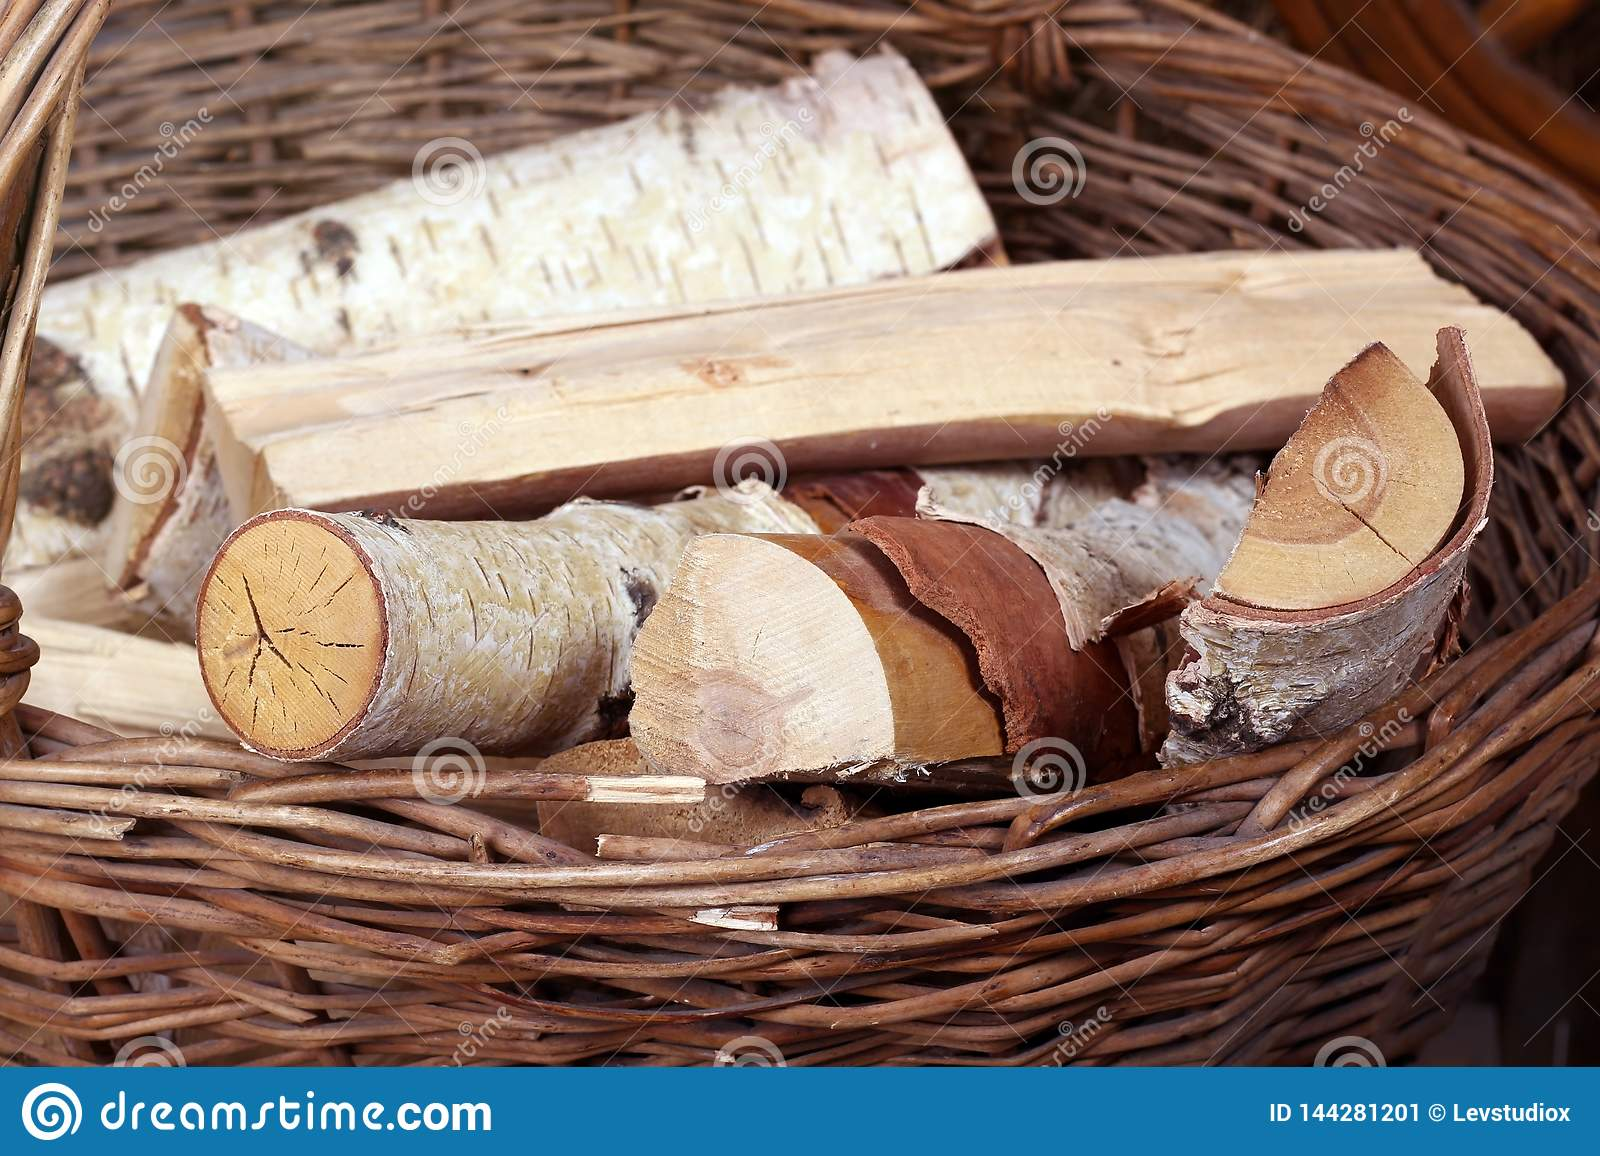 Logs lie in a wicker basket with a handle on the background of haystacks